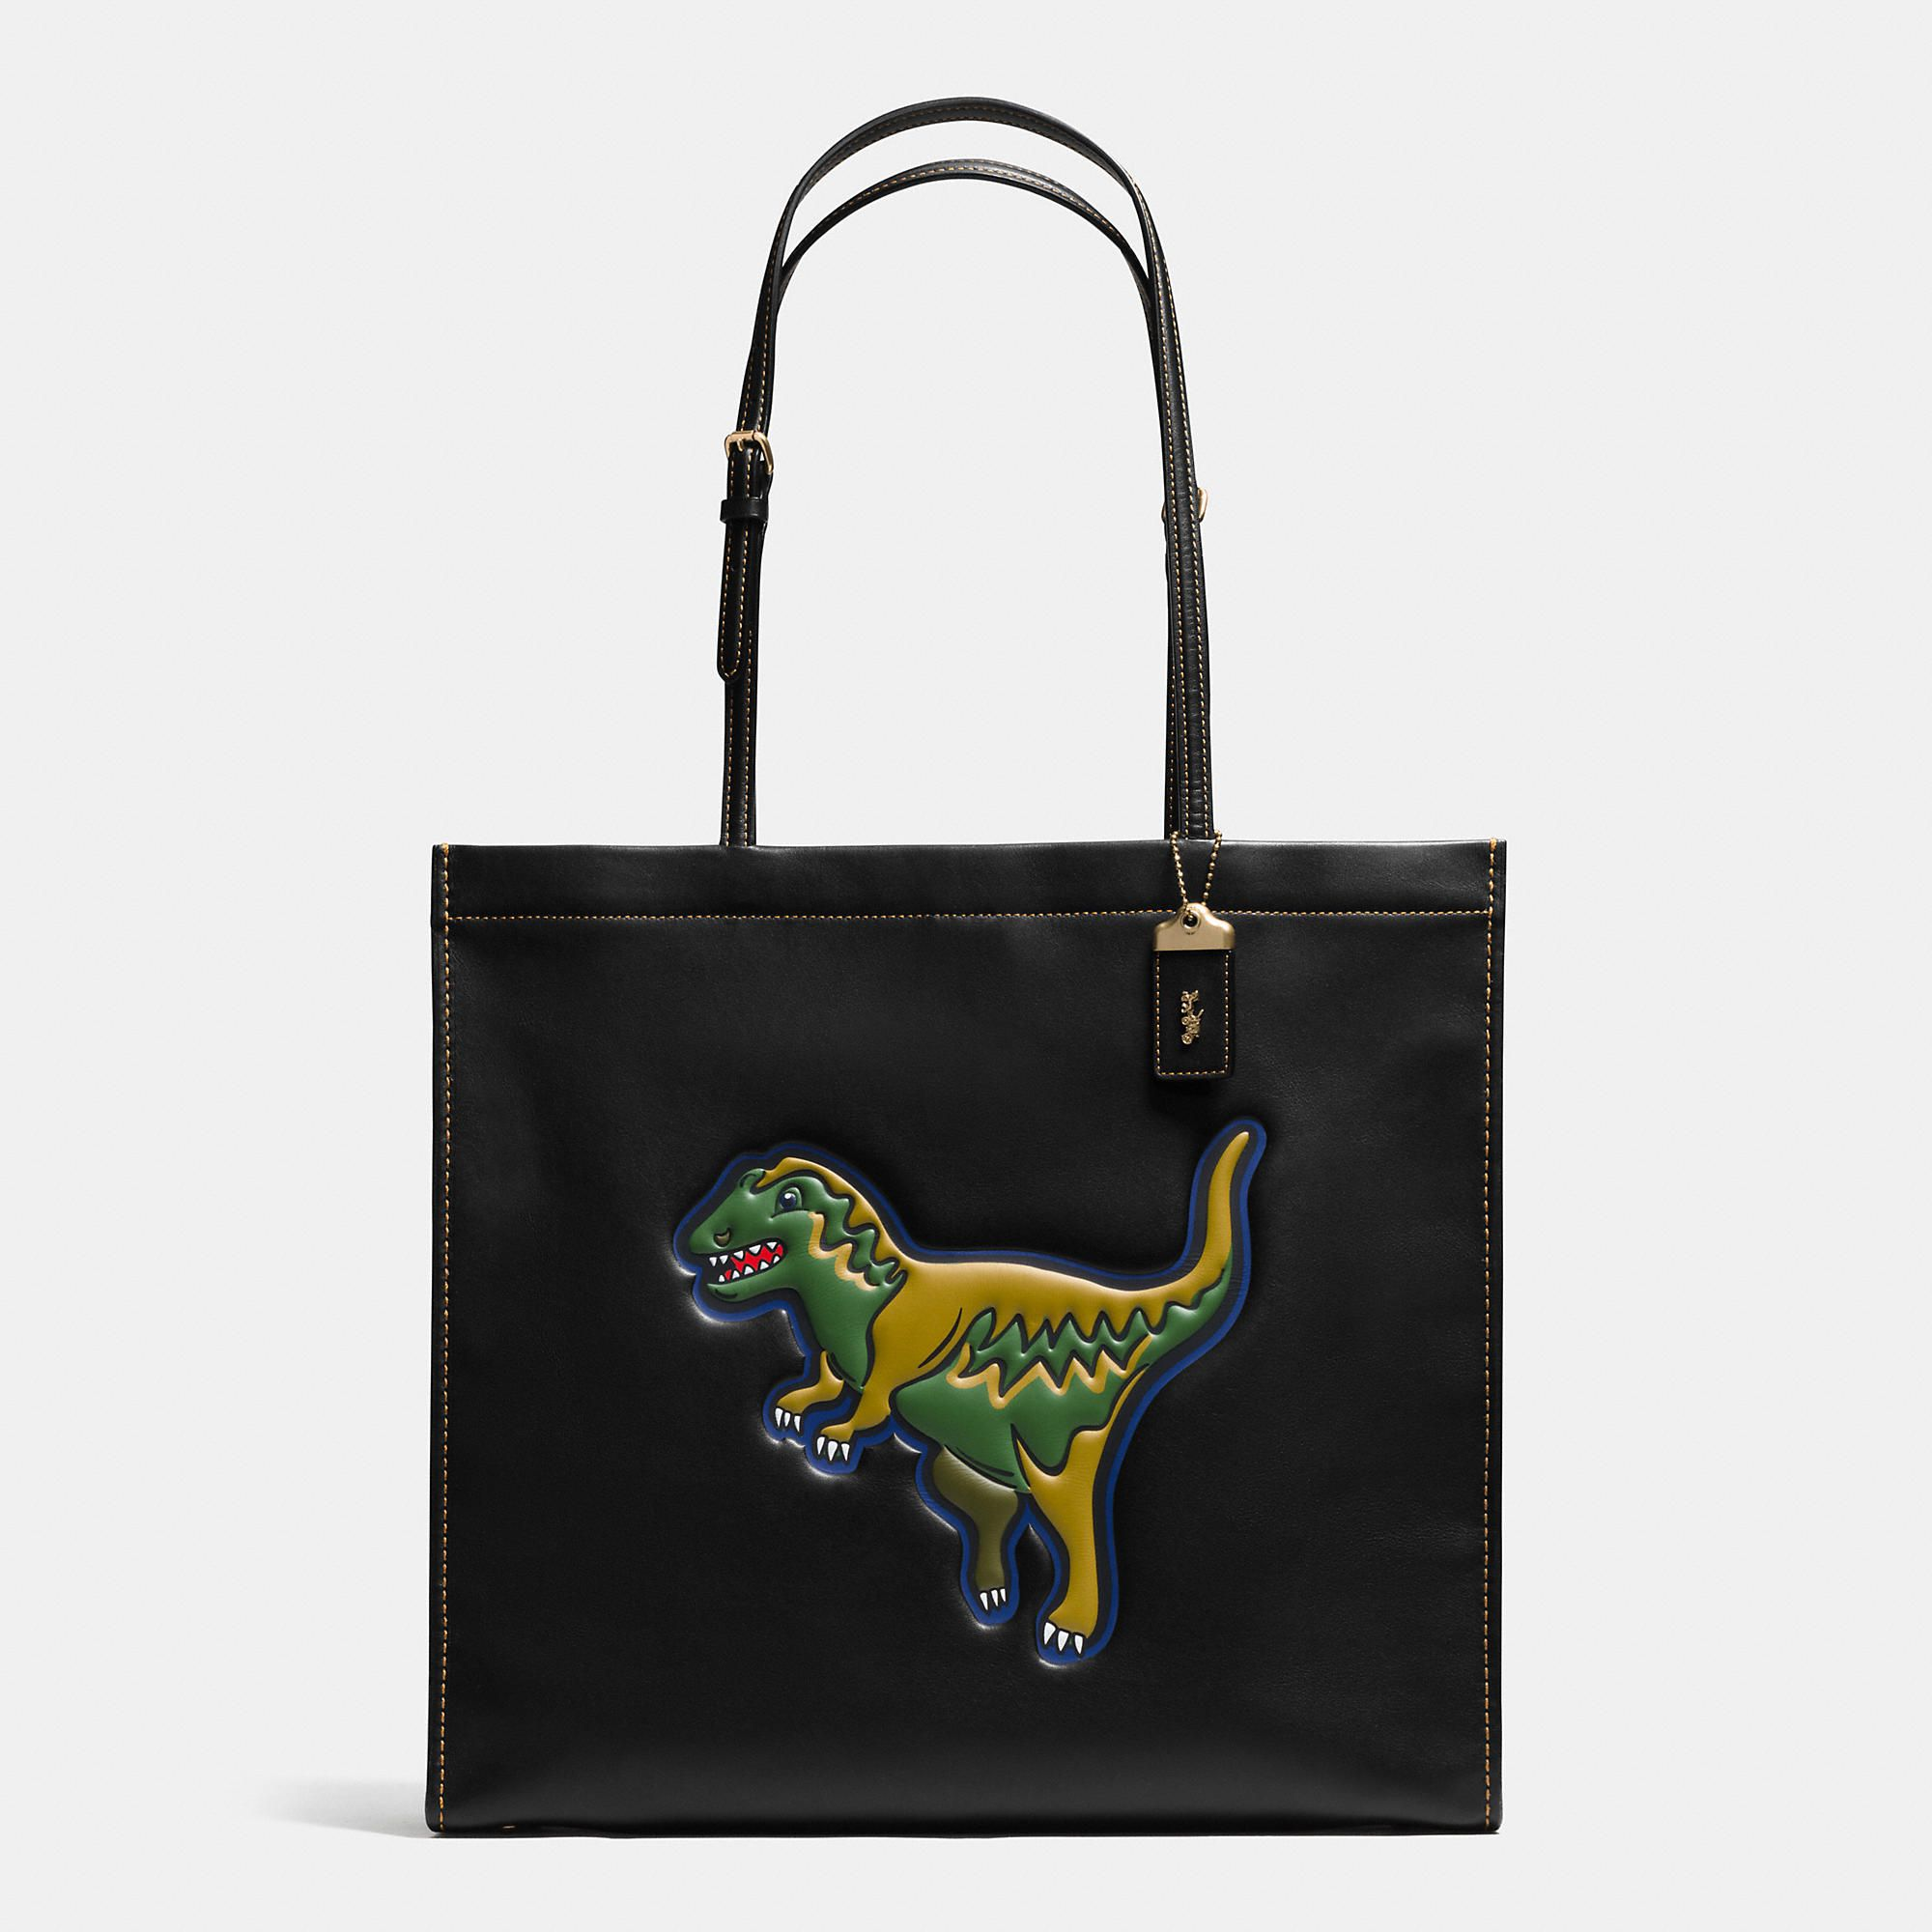 ca6cca98c Rexy Skinny 34 Tote in Glovetanned Leather   Lust list in 2019   Bags, Coach  holidays, Designer totes